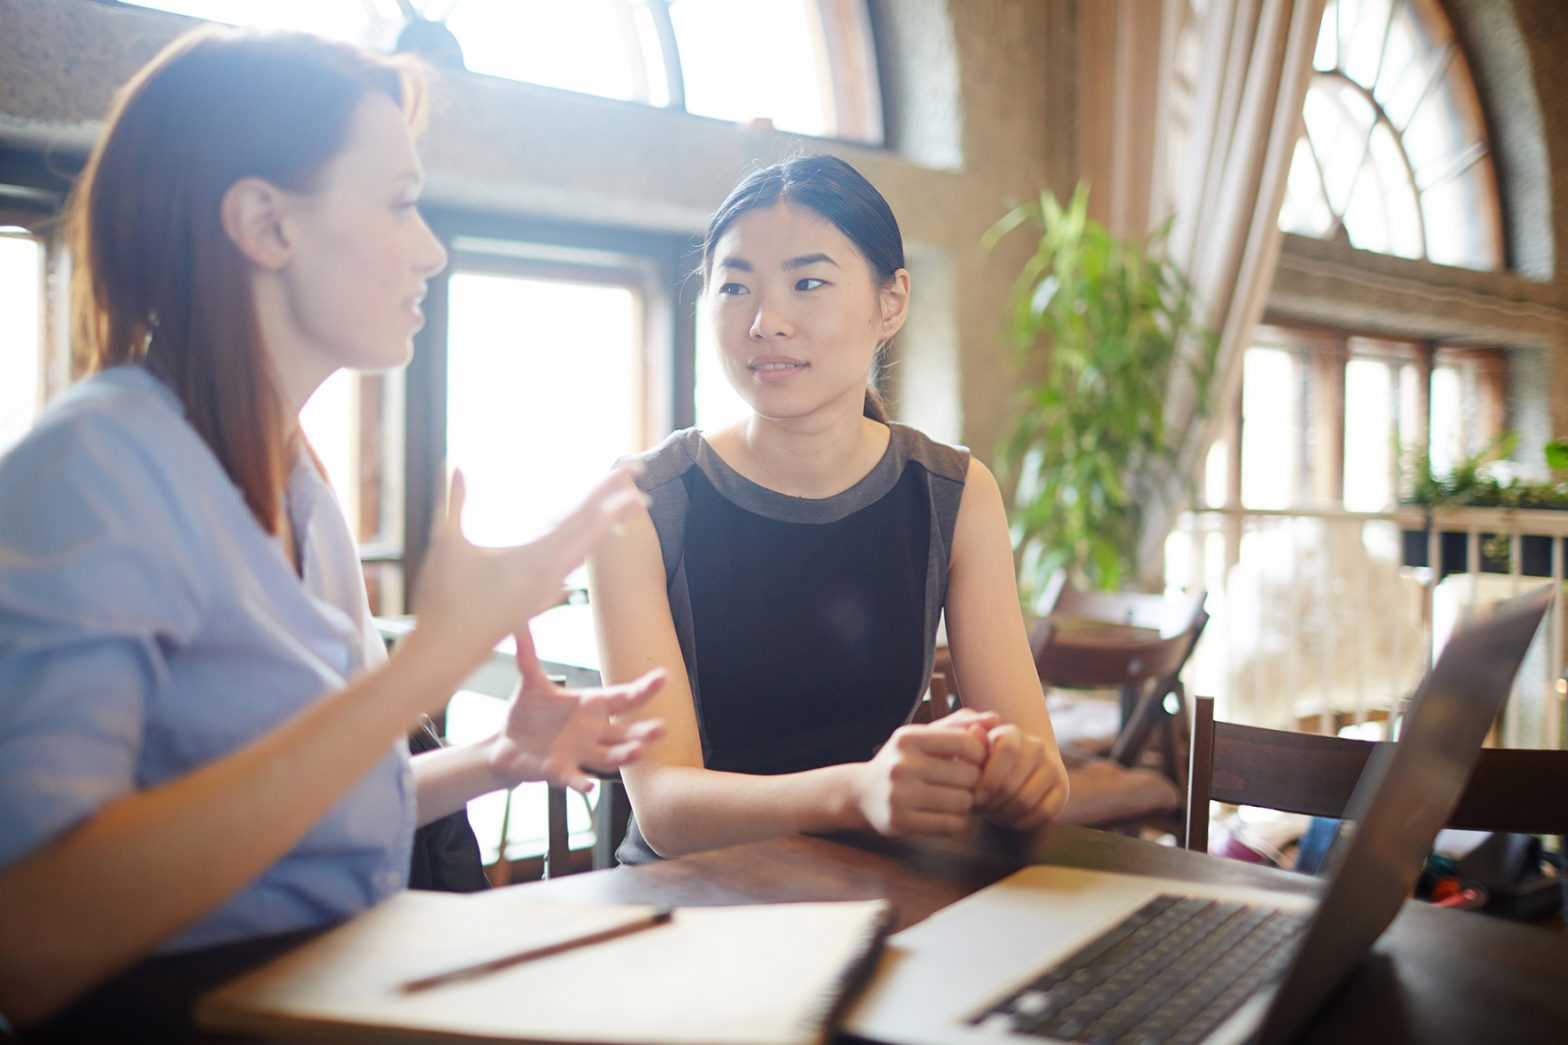 mentoring solves engagement issues